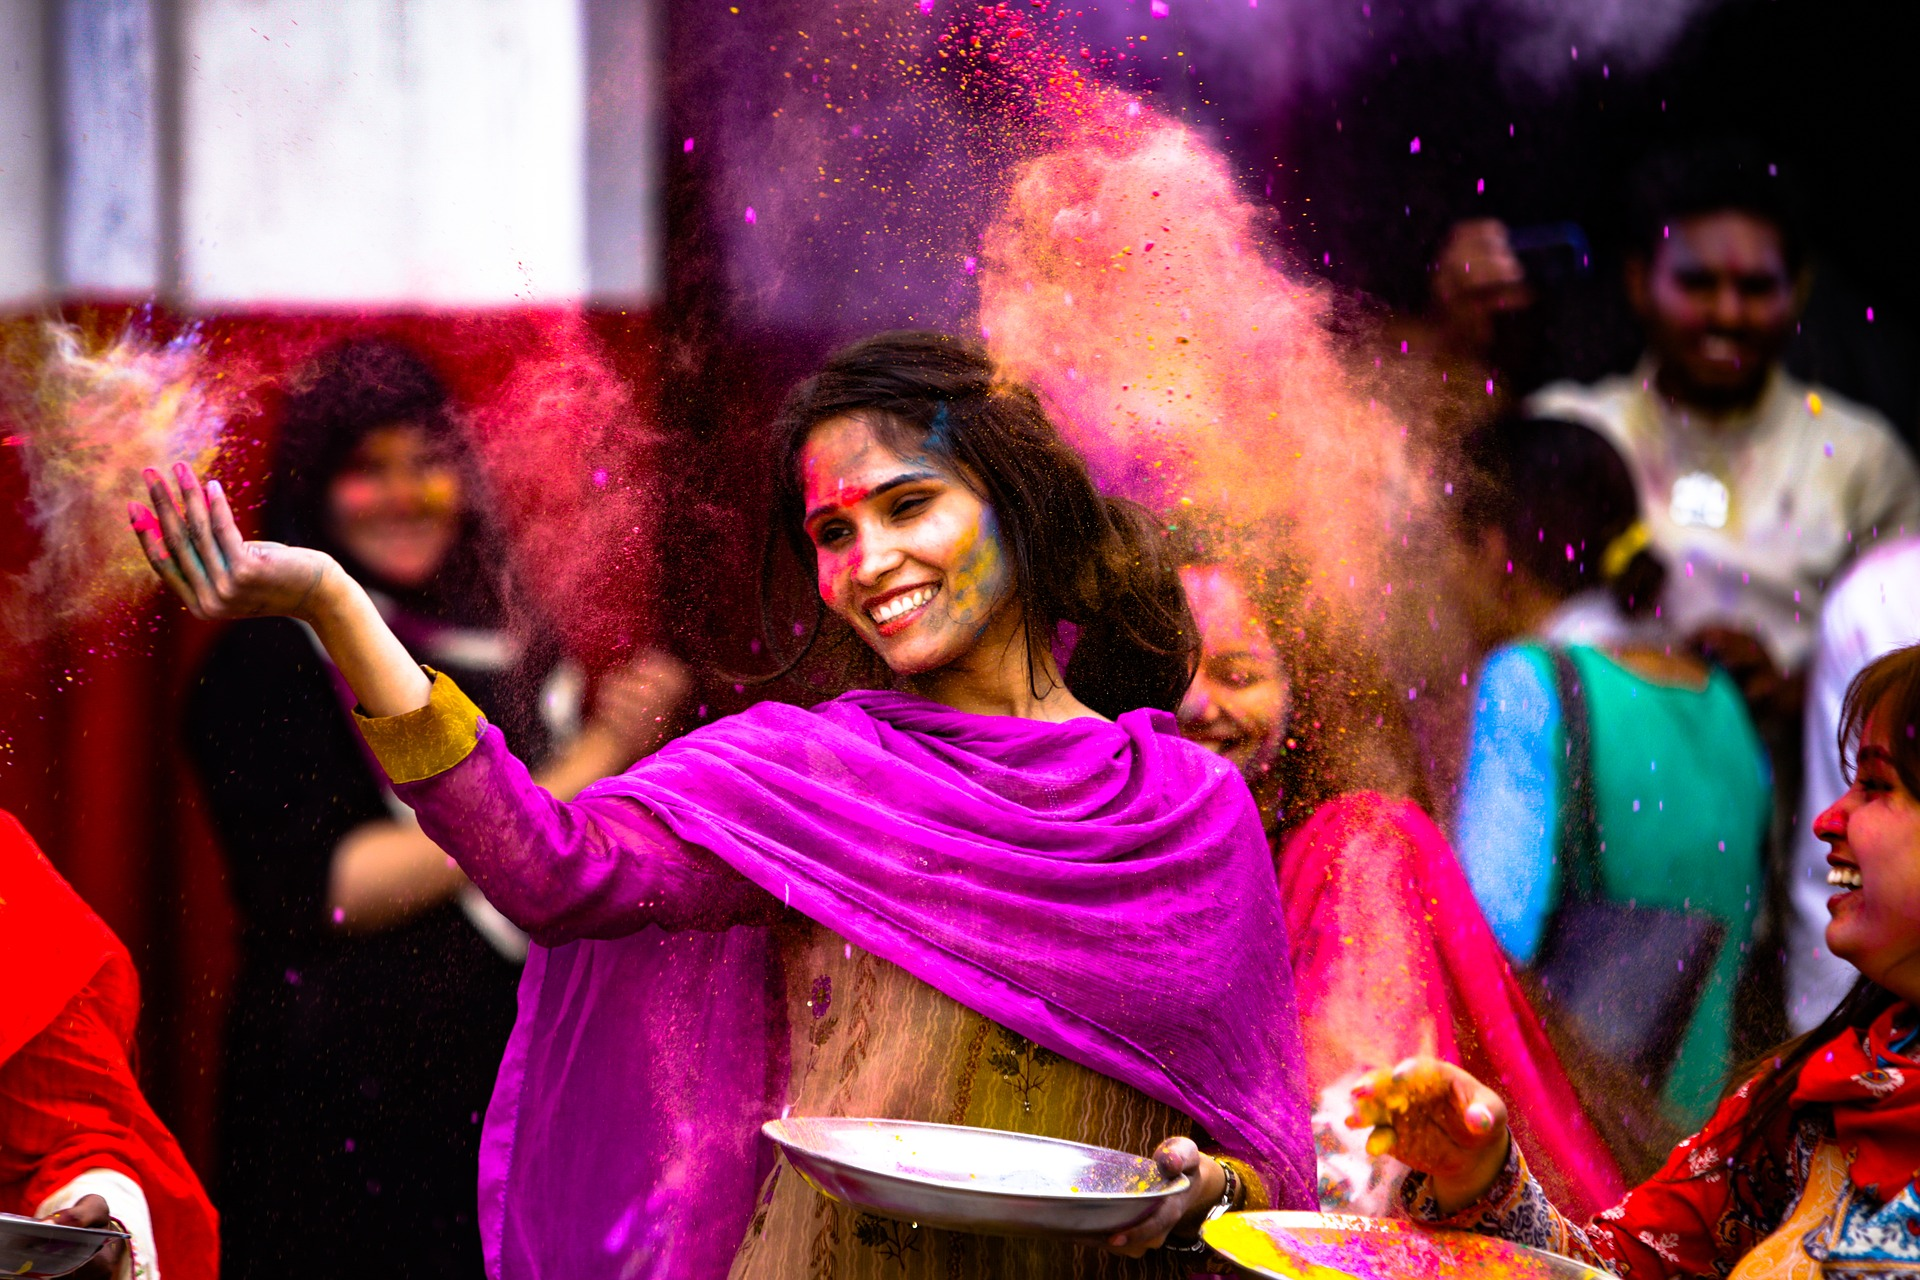 Holi 2018 Why Is it Celebrated, and Other Questions You Might Have_1 holi 2018 Holi 2018: Why Is it Celebrated, and Other Questions You Might Have Holi 2018 Why Is it Celebrated and Other Questions You Might Have 2